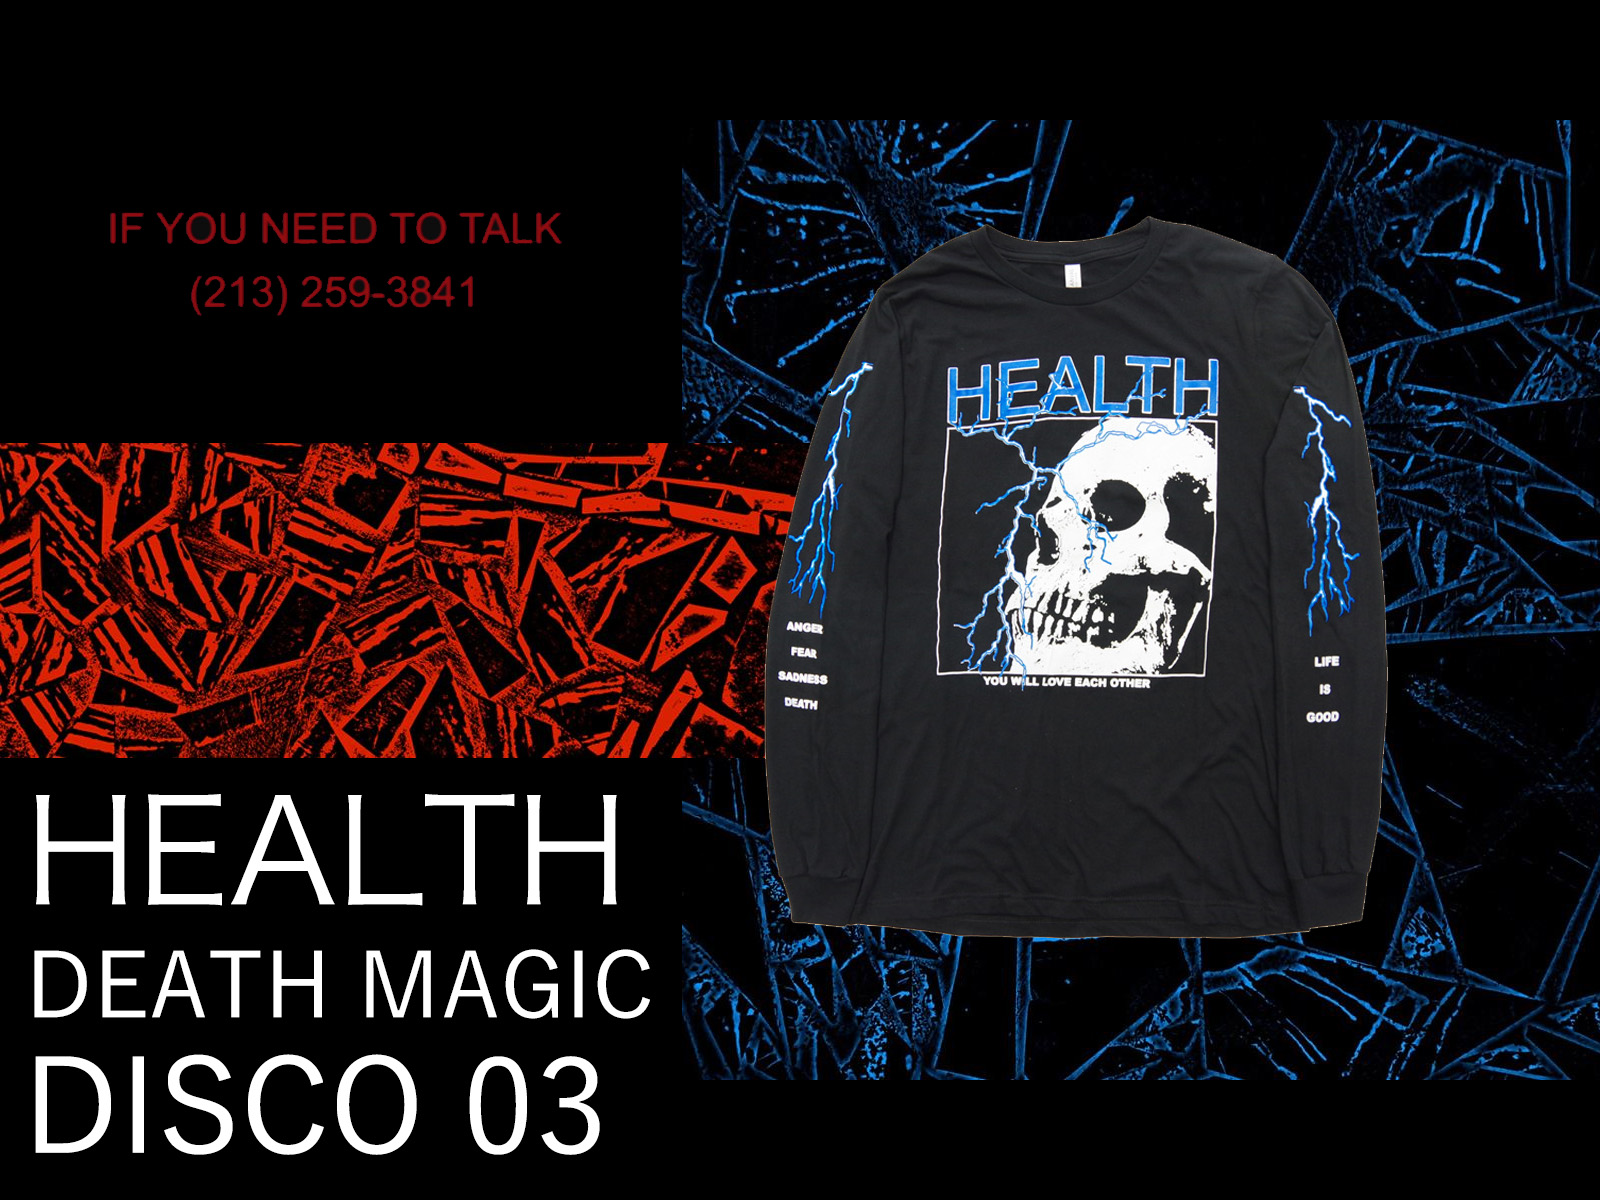 HEALTH × ALIEN BODY Official Item